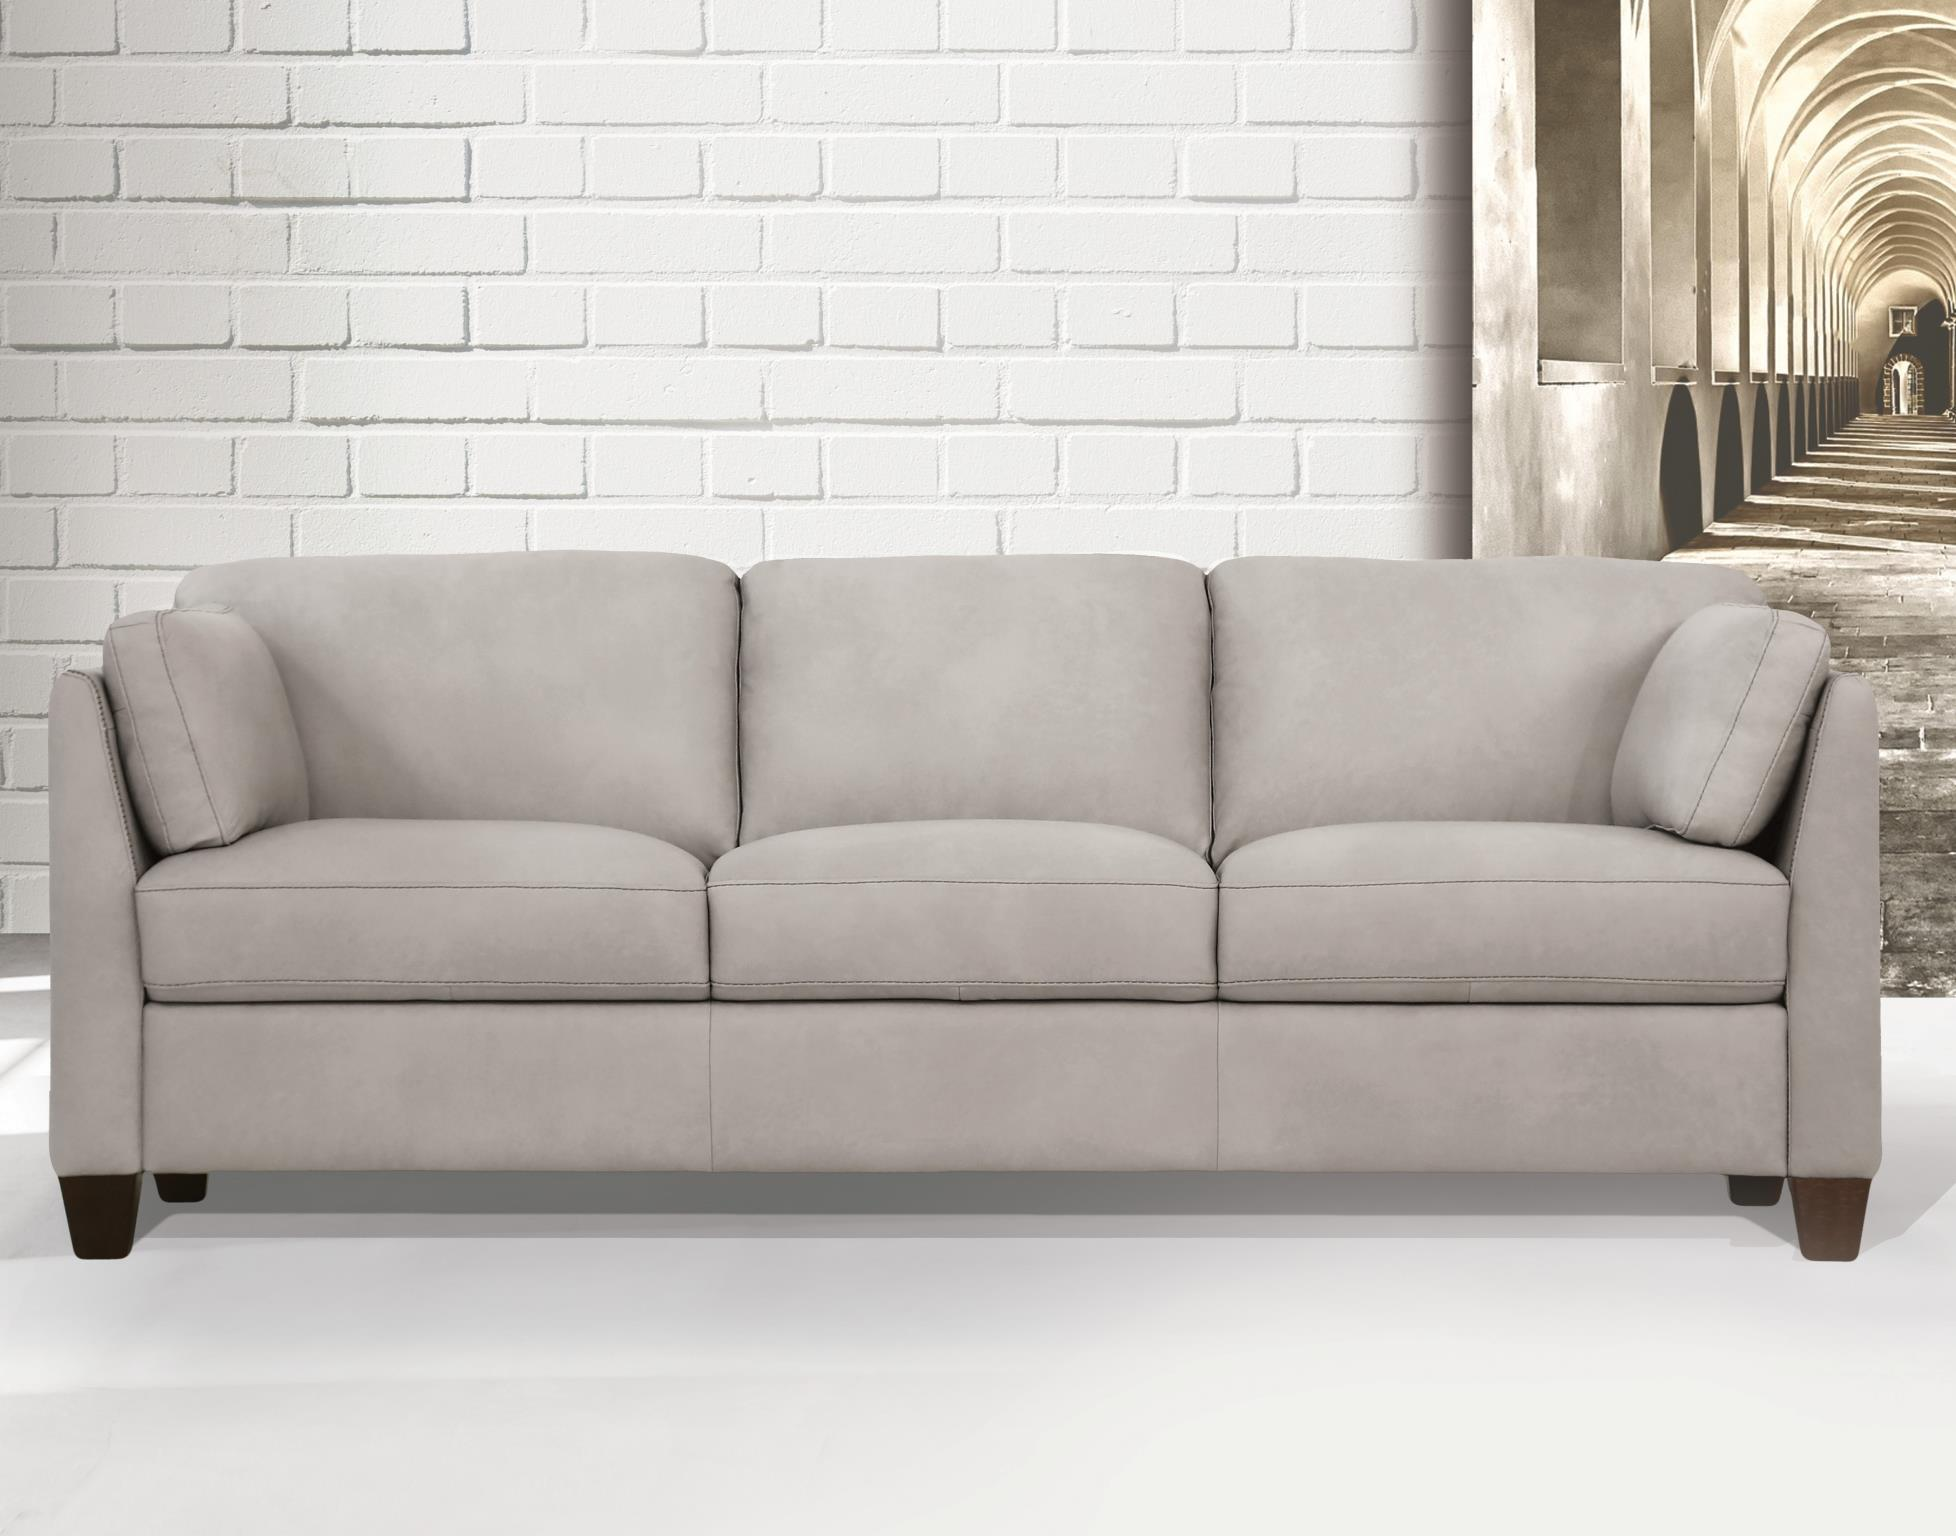 Dusty White Complete Sofa Set